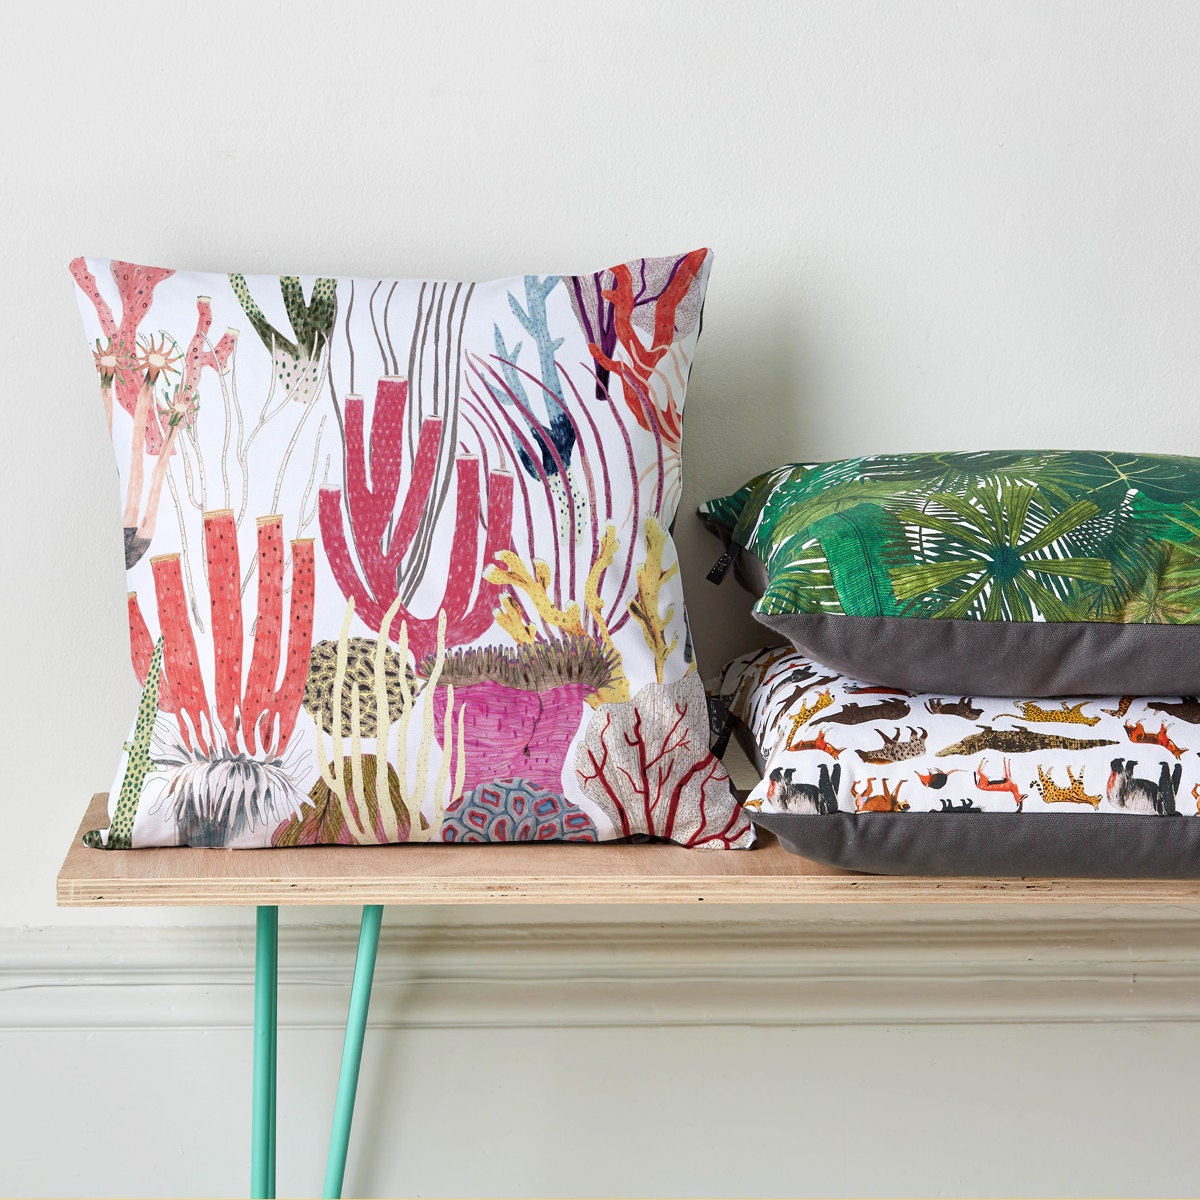 Cushion coral print home decor living room decor for Coral decorations for home